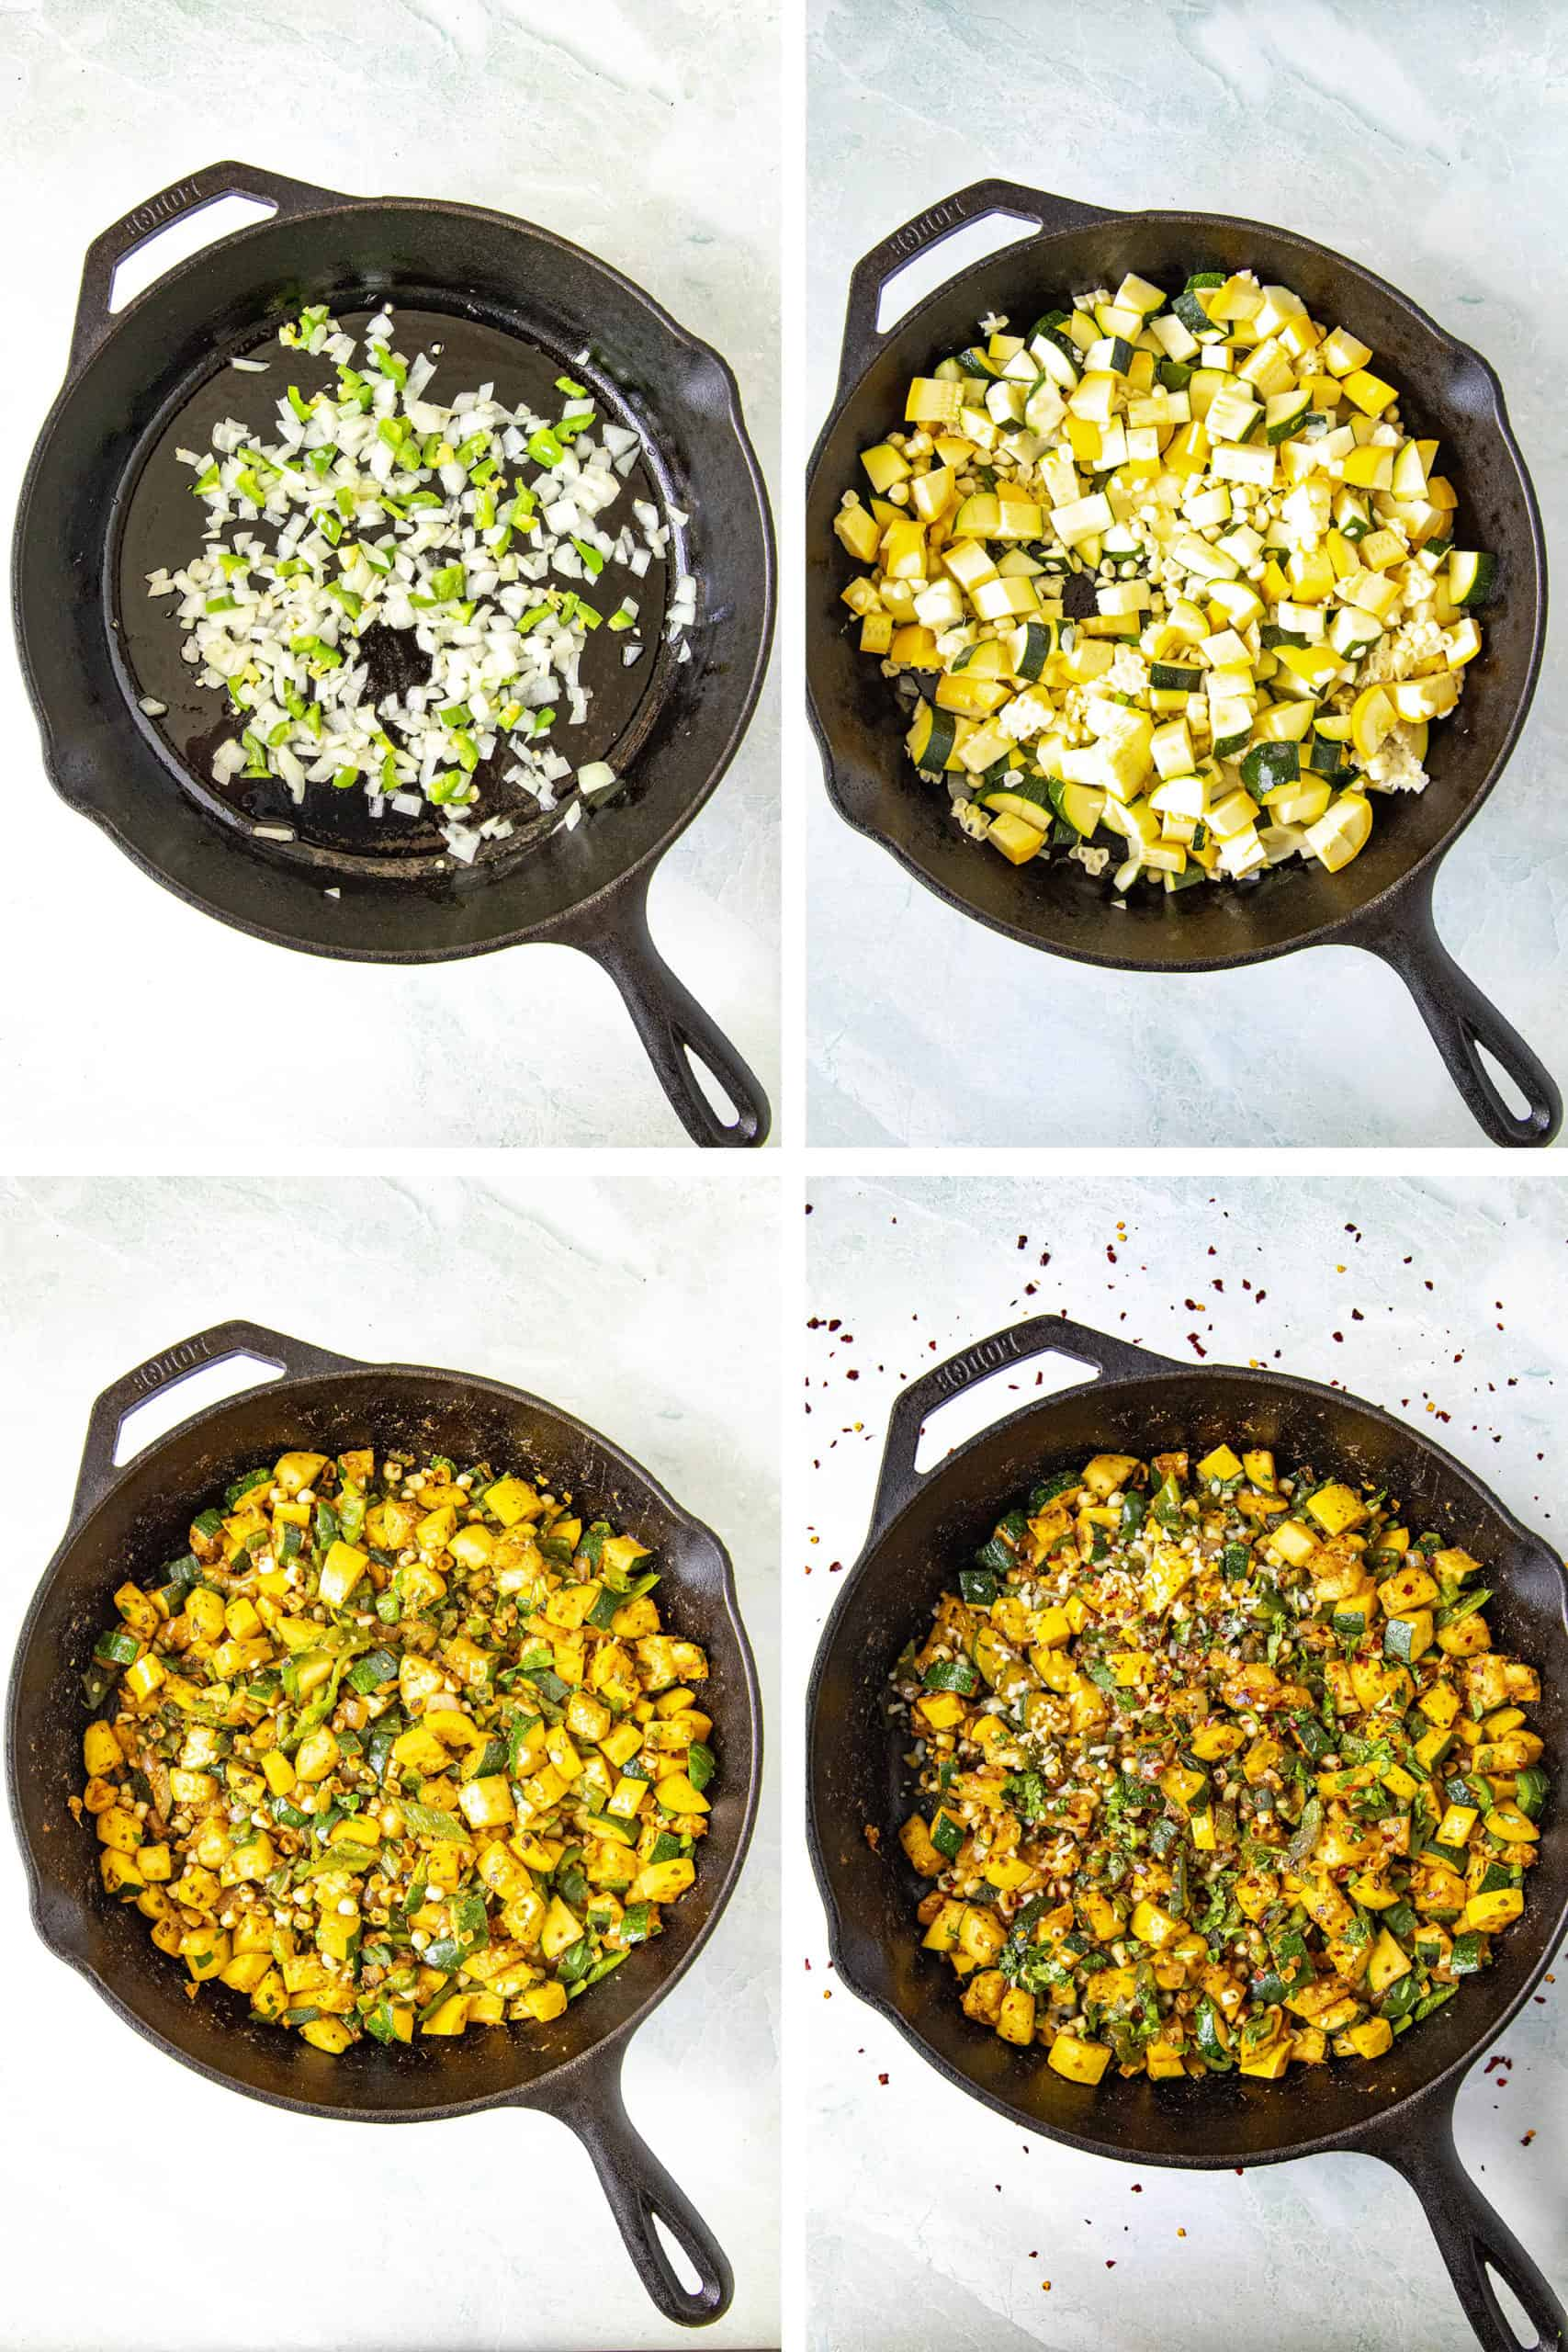 Steps for making Calabacitas